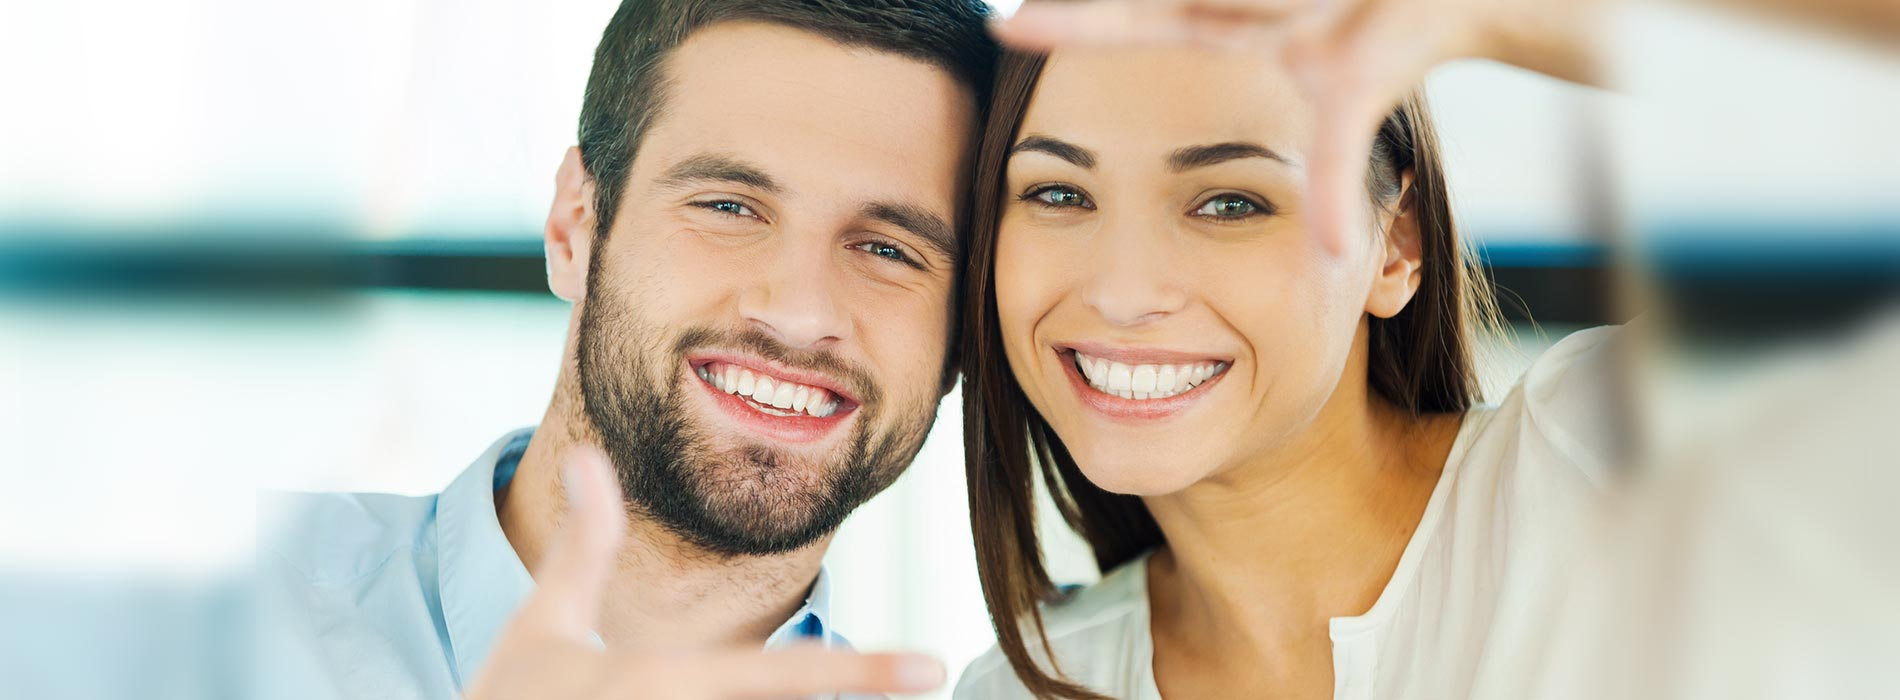 Complete Quality Dental Care in Berwyn